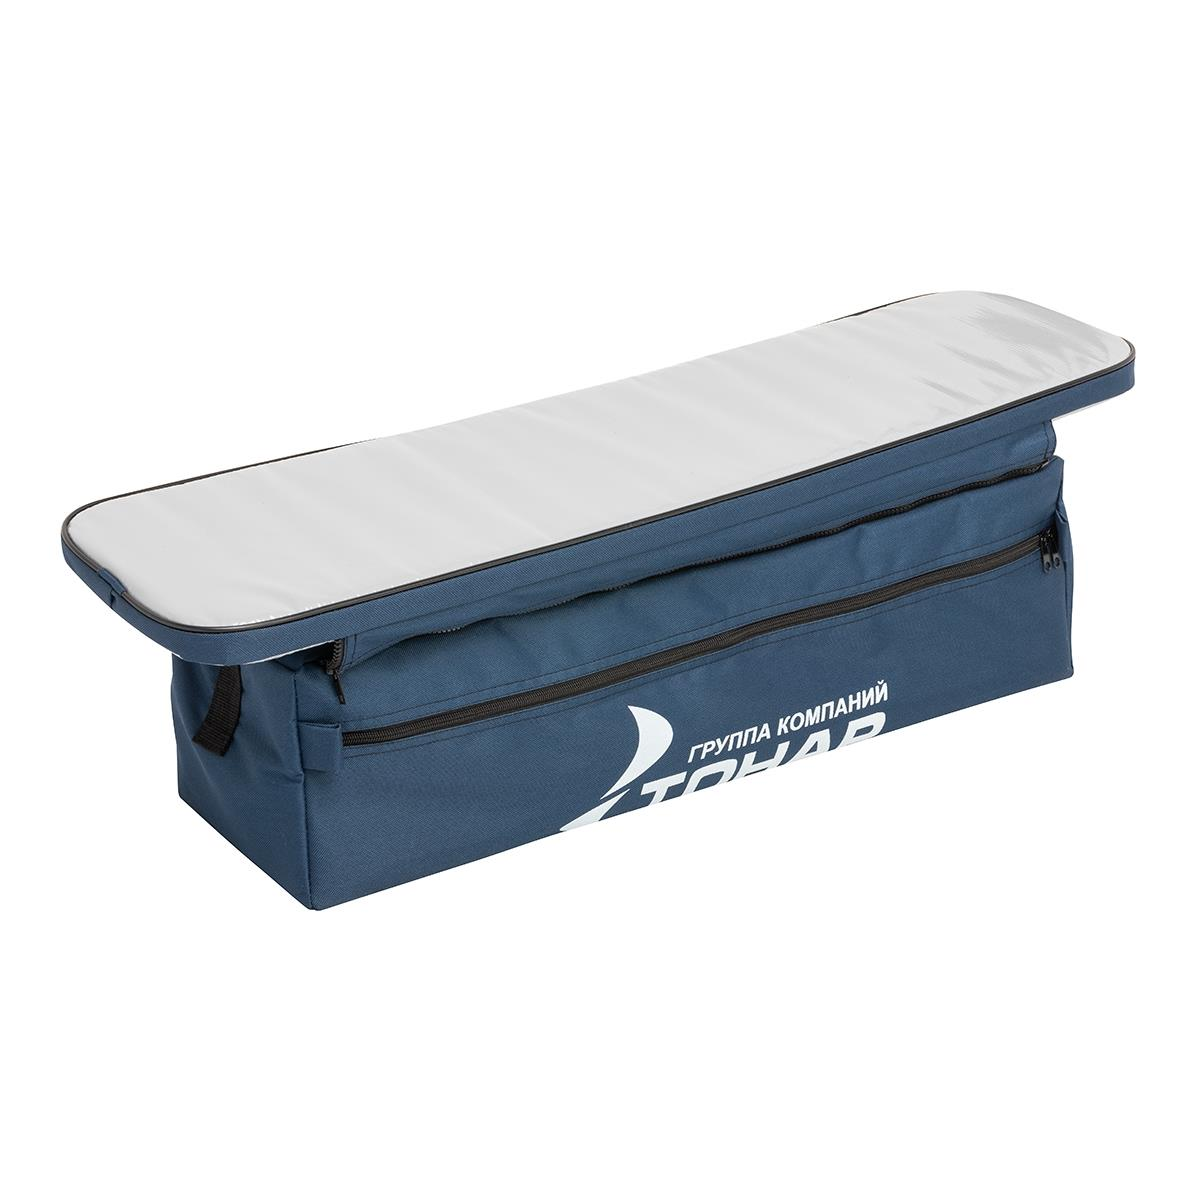 Bag Under The Seat For Boats (length 82 Cm, Blue)